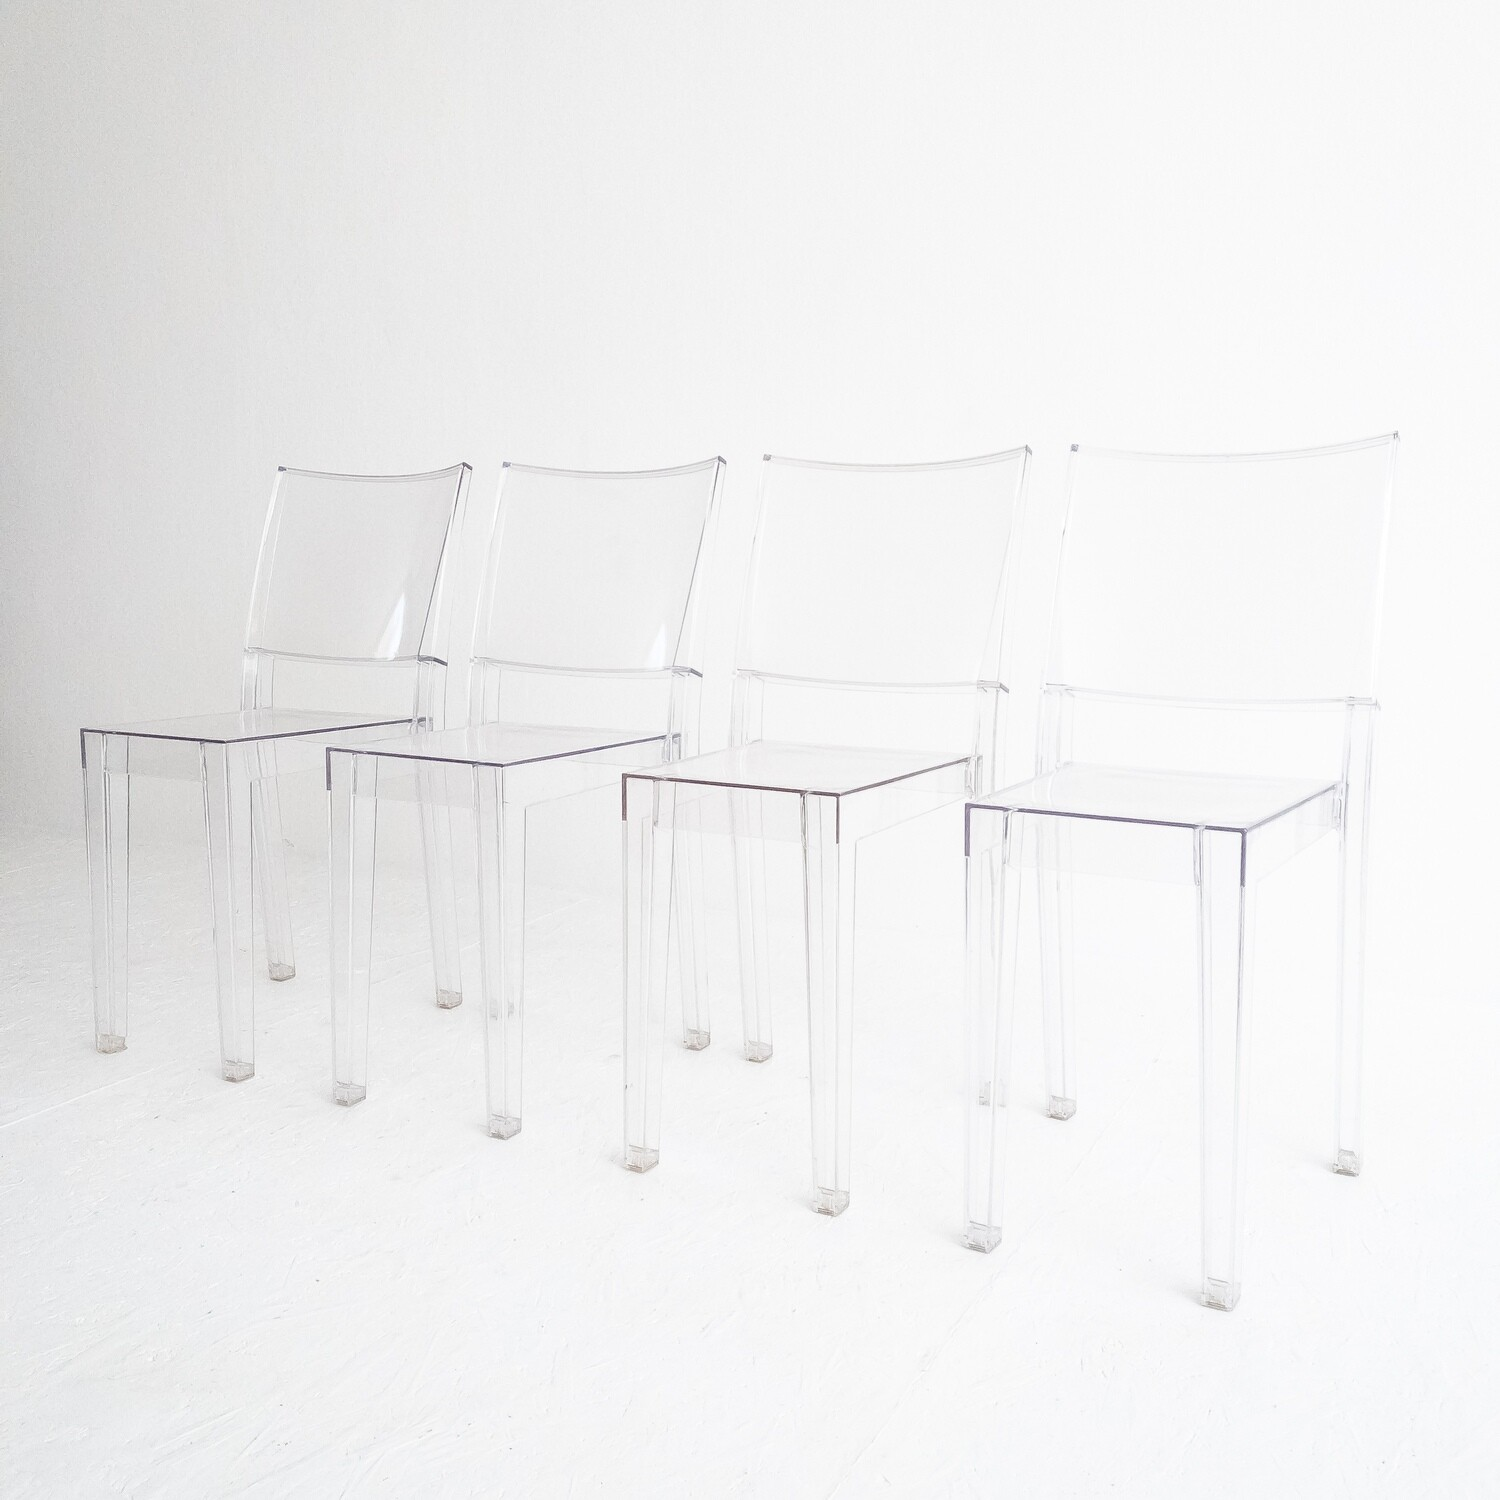 Set of 4 La Marie chairs by Philippe Stark for Kartell, 1998